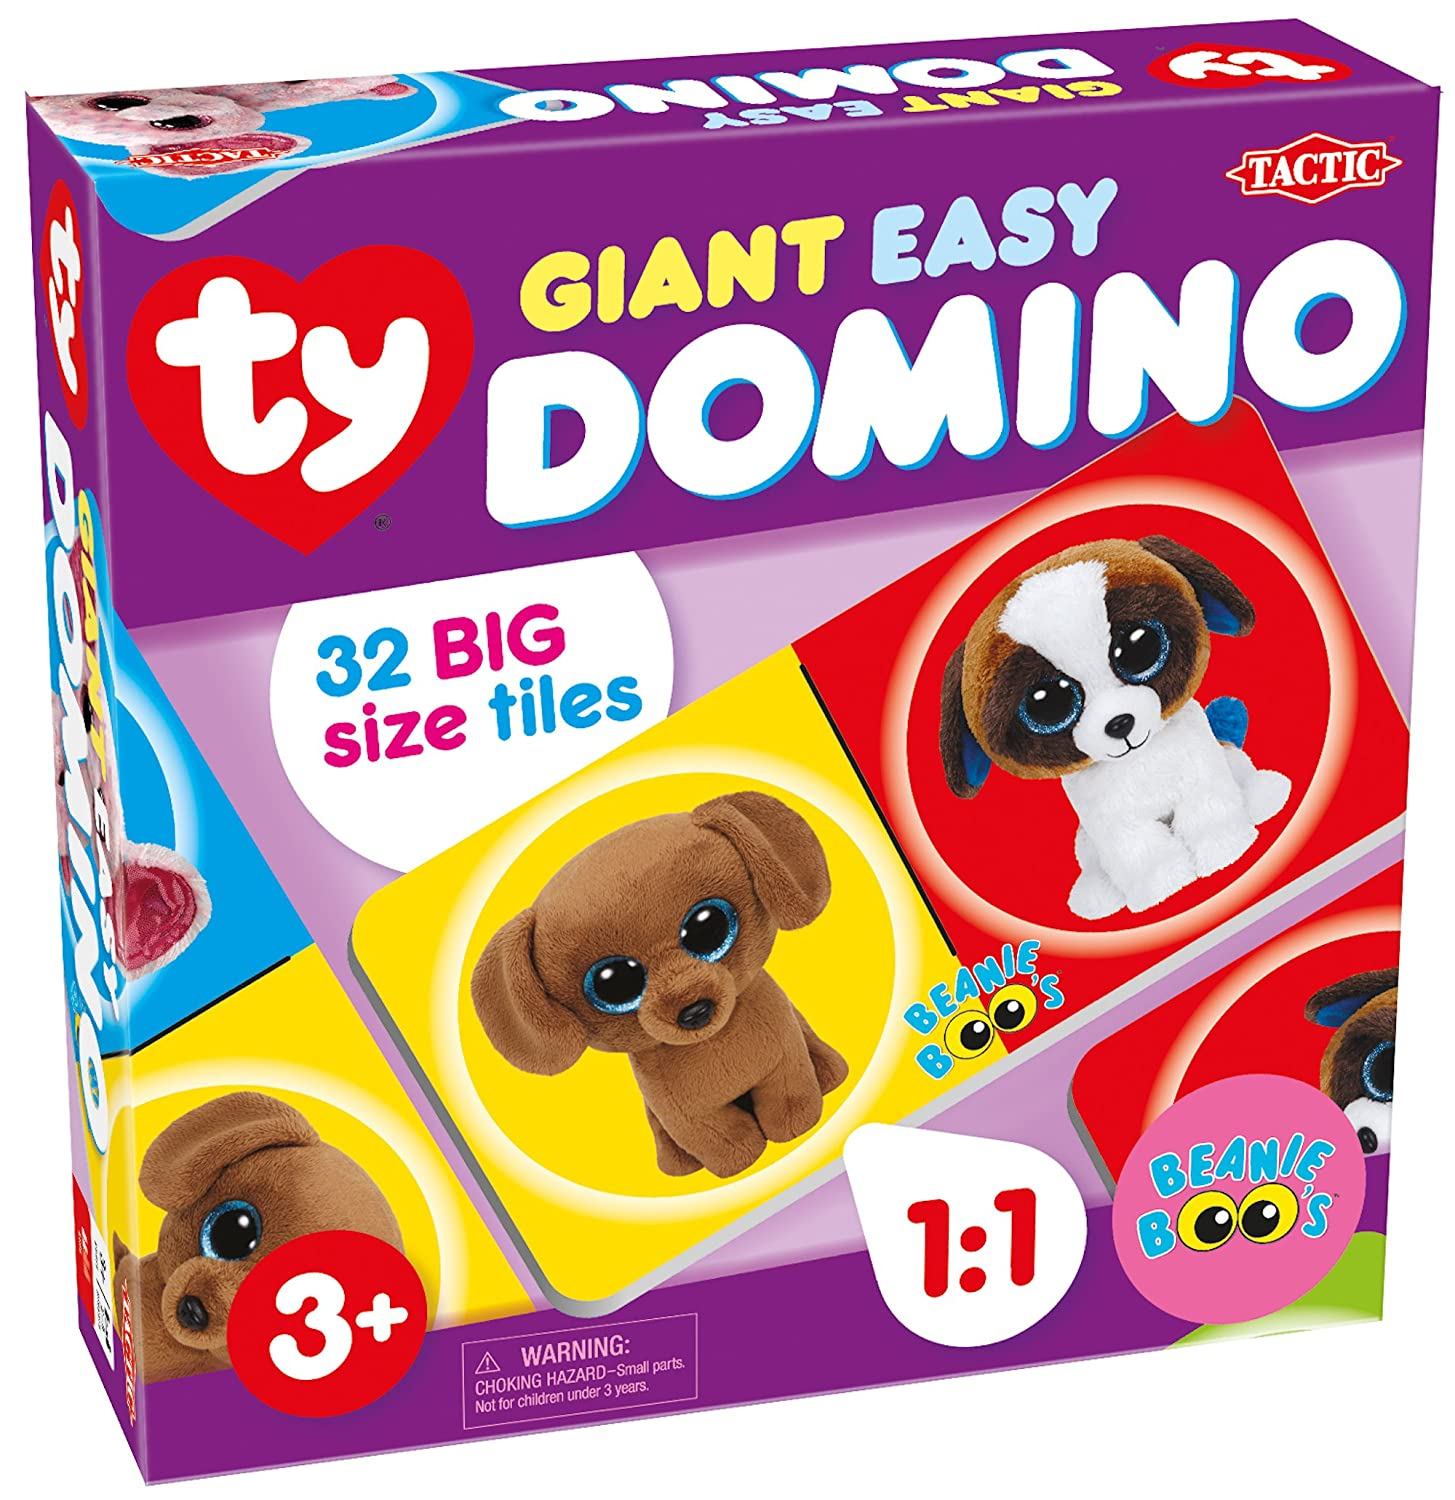 US Ty Giant Domino Game Tactic USA Inc 53998